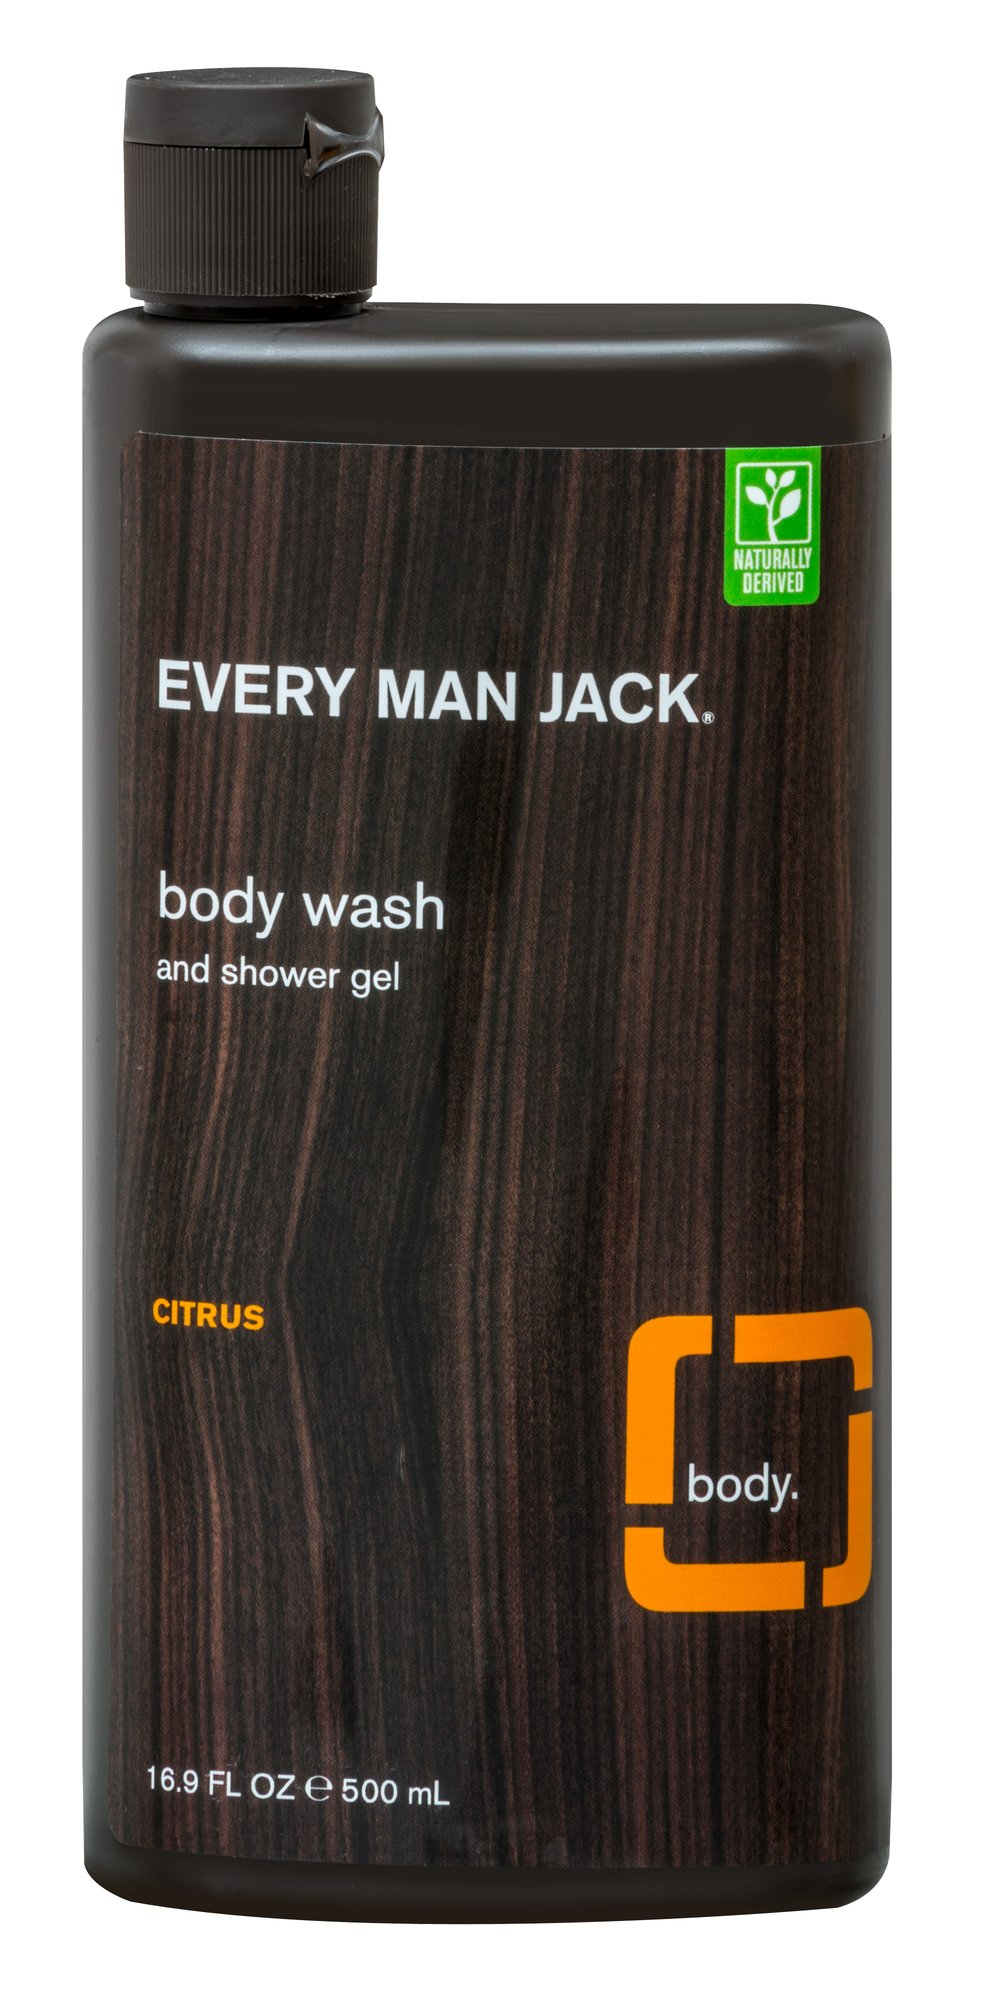 Every Man Jack® Citrus Scrub Body Wash & Shower Gel <p><b>From the Manufacturer's Label:</b></p> <p><b>Citrus Scrub</b></p> <p><b>Body Wash & Shower Gel</b></p>  <p>WILL THIS STUFF MAKE ME A ROCK STAR? We don't condone air guitar in the shower. (Or anywhere else.) But give it a try. While that's going on, this invigorating body wash will gently scrub your skin, leaving it feeling clean and smooth. </p&g